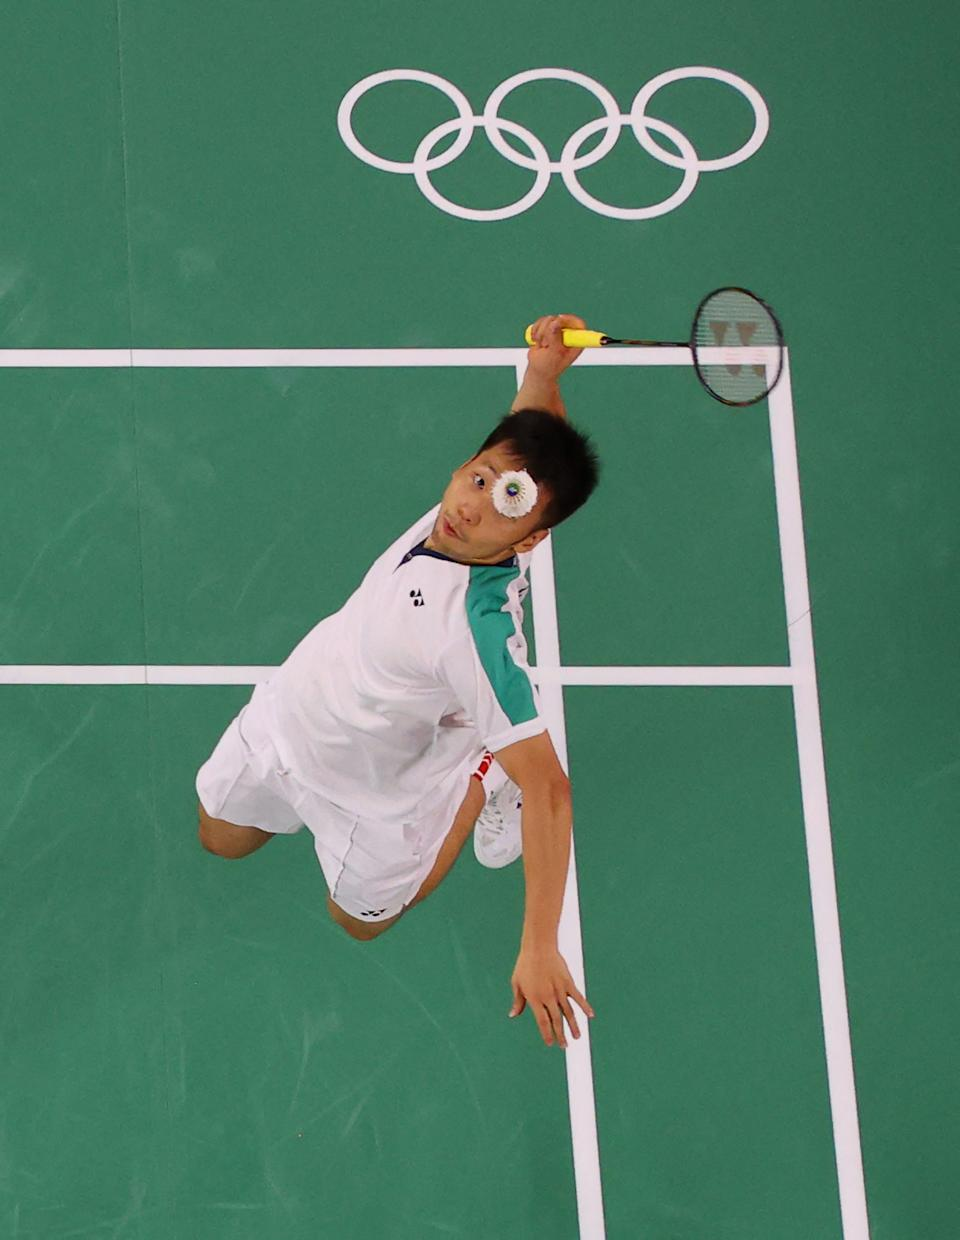 <p>Taiwan's Lee Yang hits a shot next to Taiwan's Wang Chi-lin in their men's doubles badminton final match against China's Li Junhui and China's Liu Yuchen during the Tokyo 2020 Olympic Games at the Musashino Forest Sports Plaza in Tokyo on July 31, 2021. (Photo by LINTAO ZHANG / POOL / AFP) (Photo by LINTAO ZHANG/POOL/AFP via Getty Images)</p>